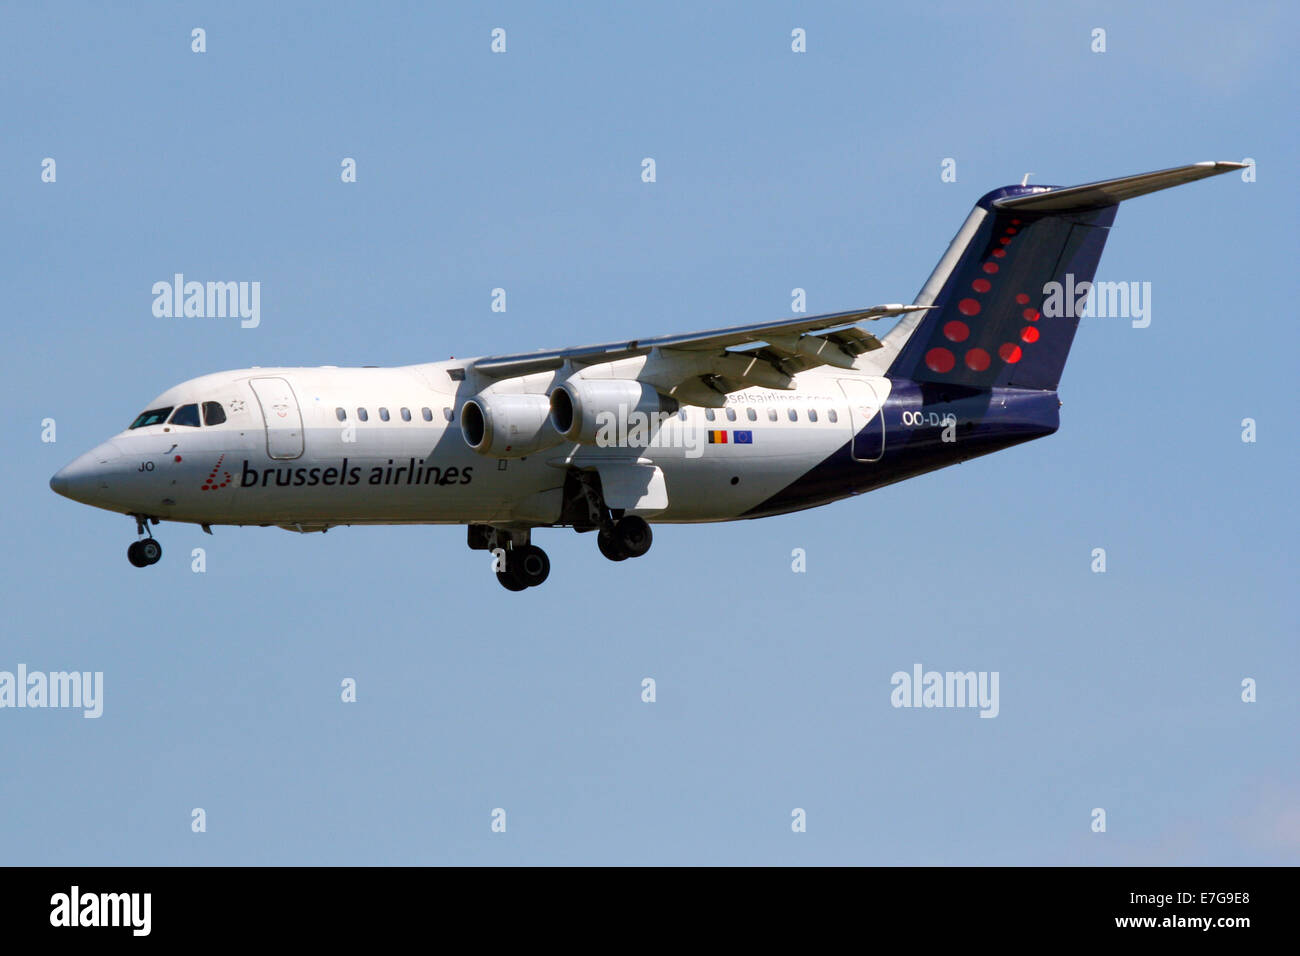 Brussels Airlines British Aerospace Avro RJ85 approaches runway 27L at London Heathrow airport. - Stock Image